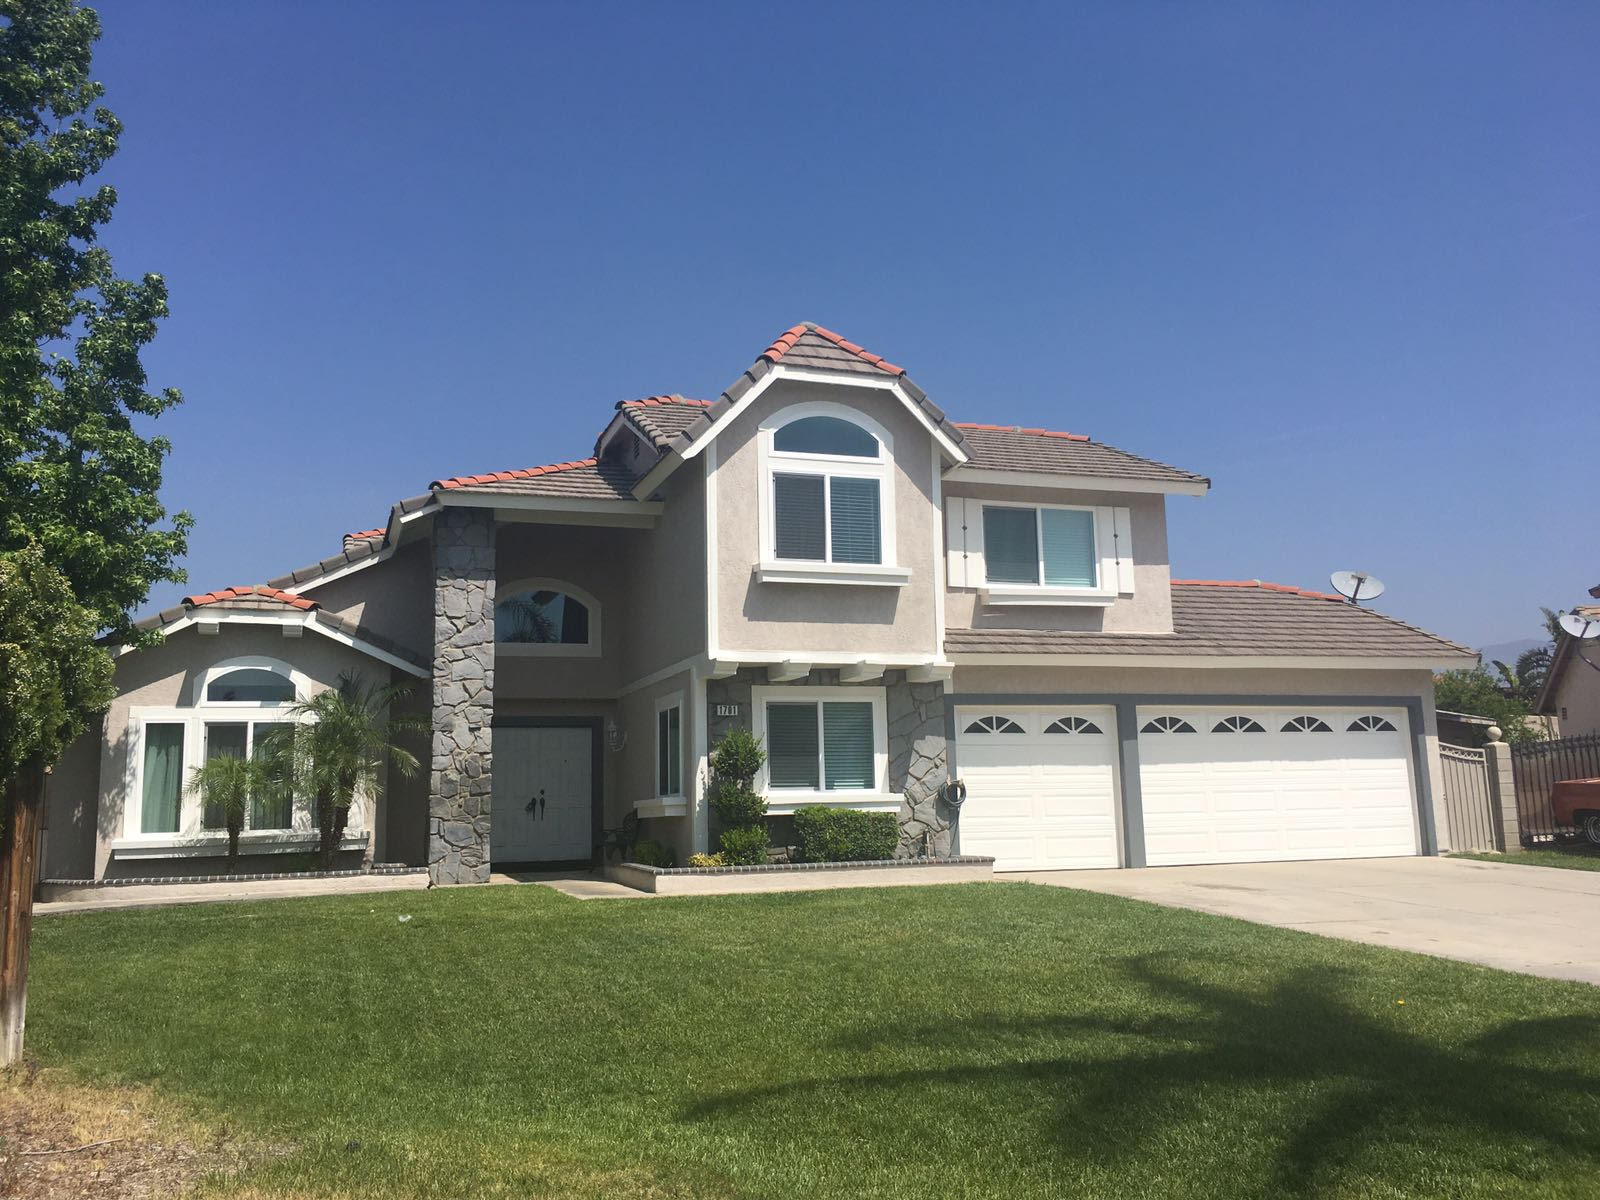 Exterior stucco and paint